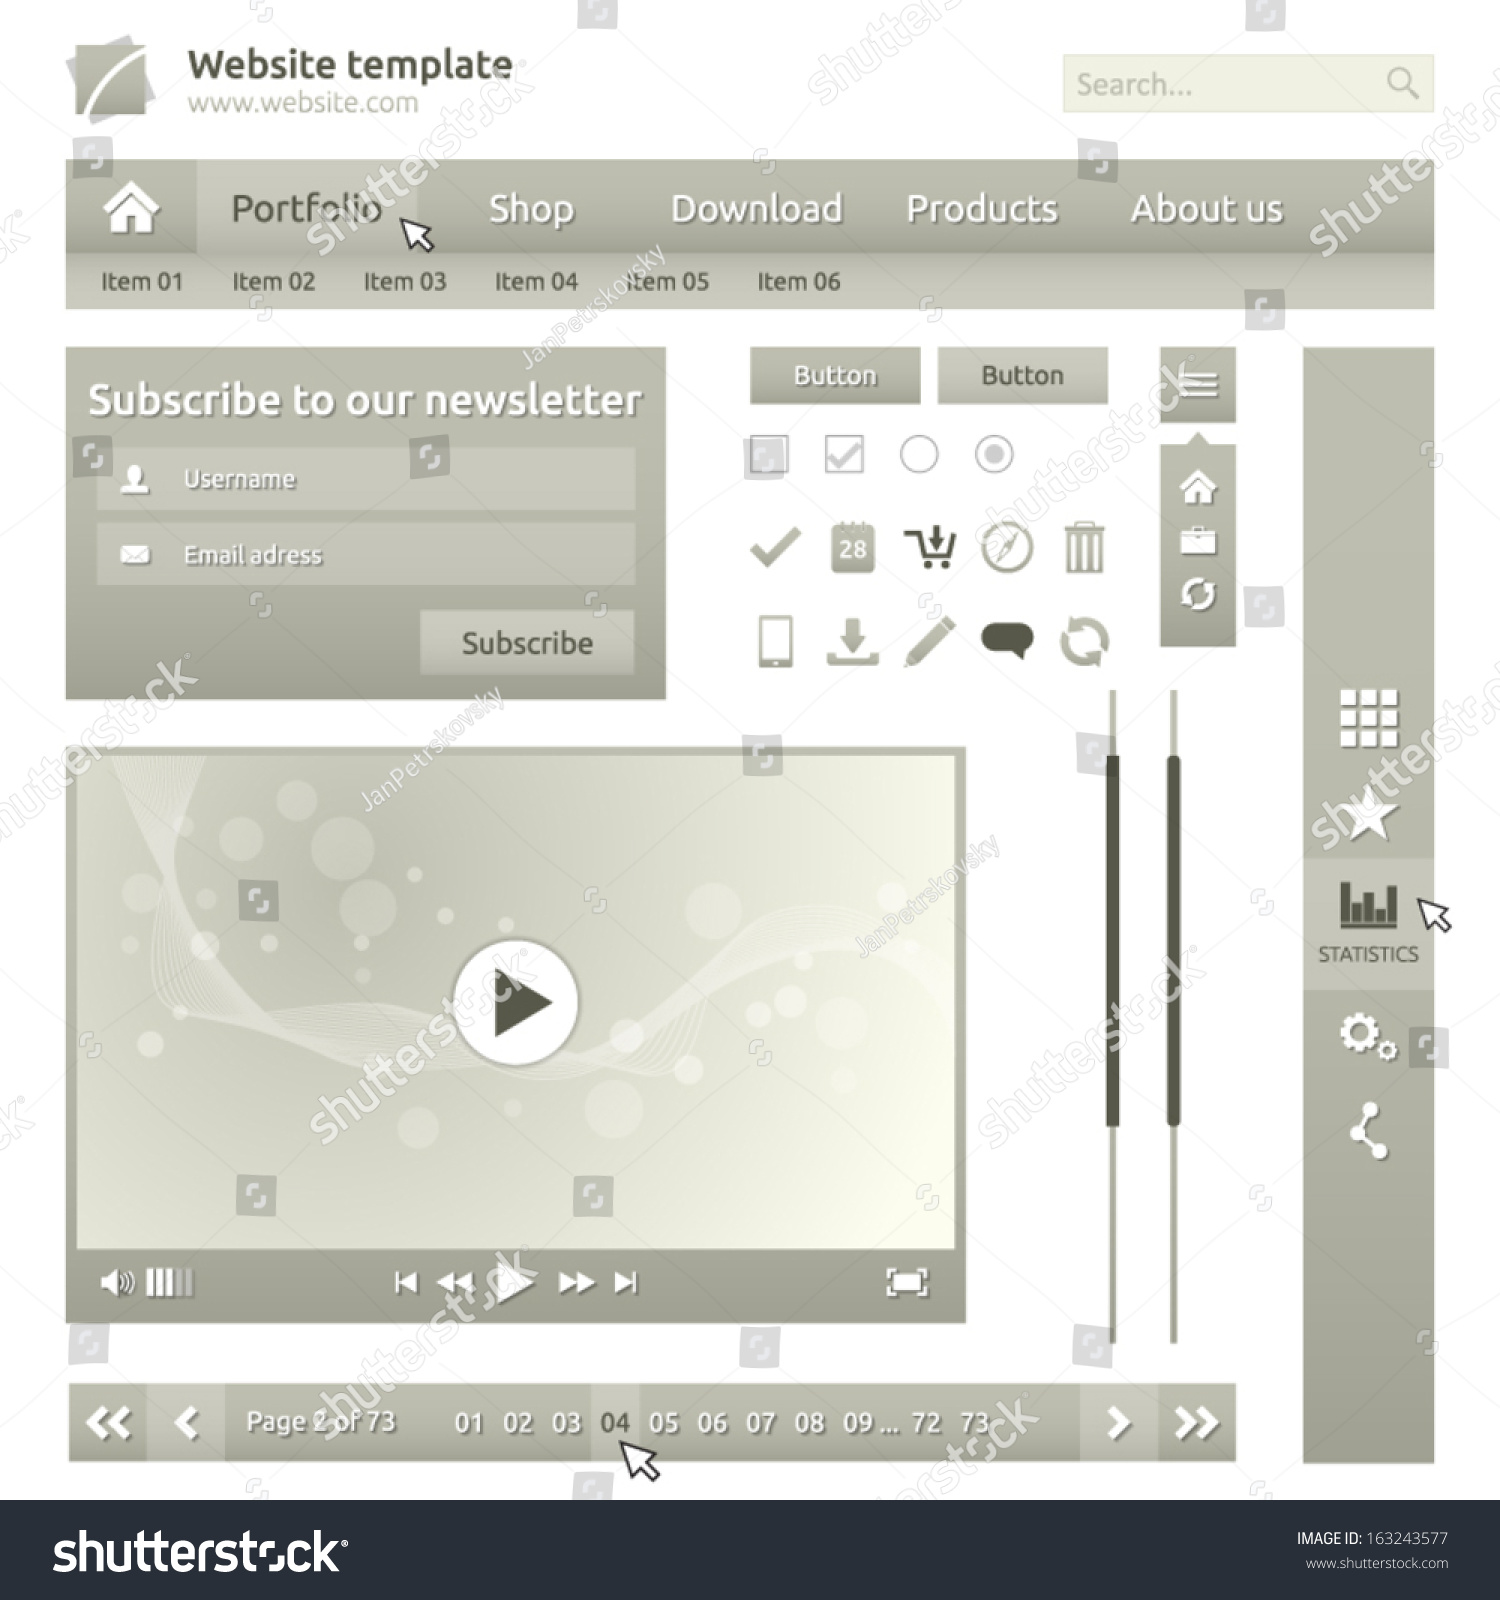 Website Elements Design Template For Your Web Page Video Player